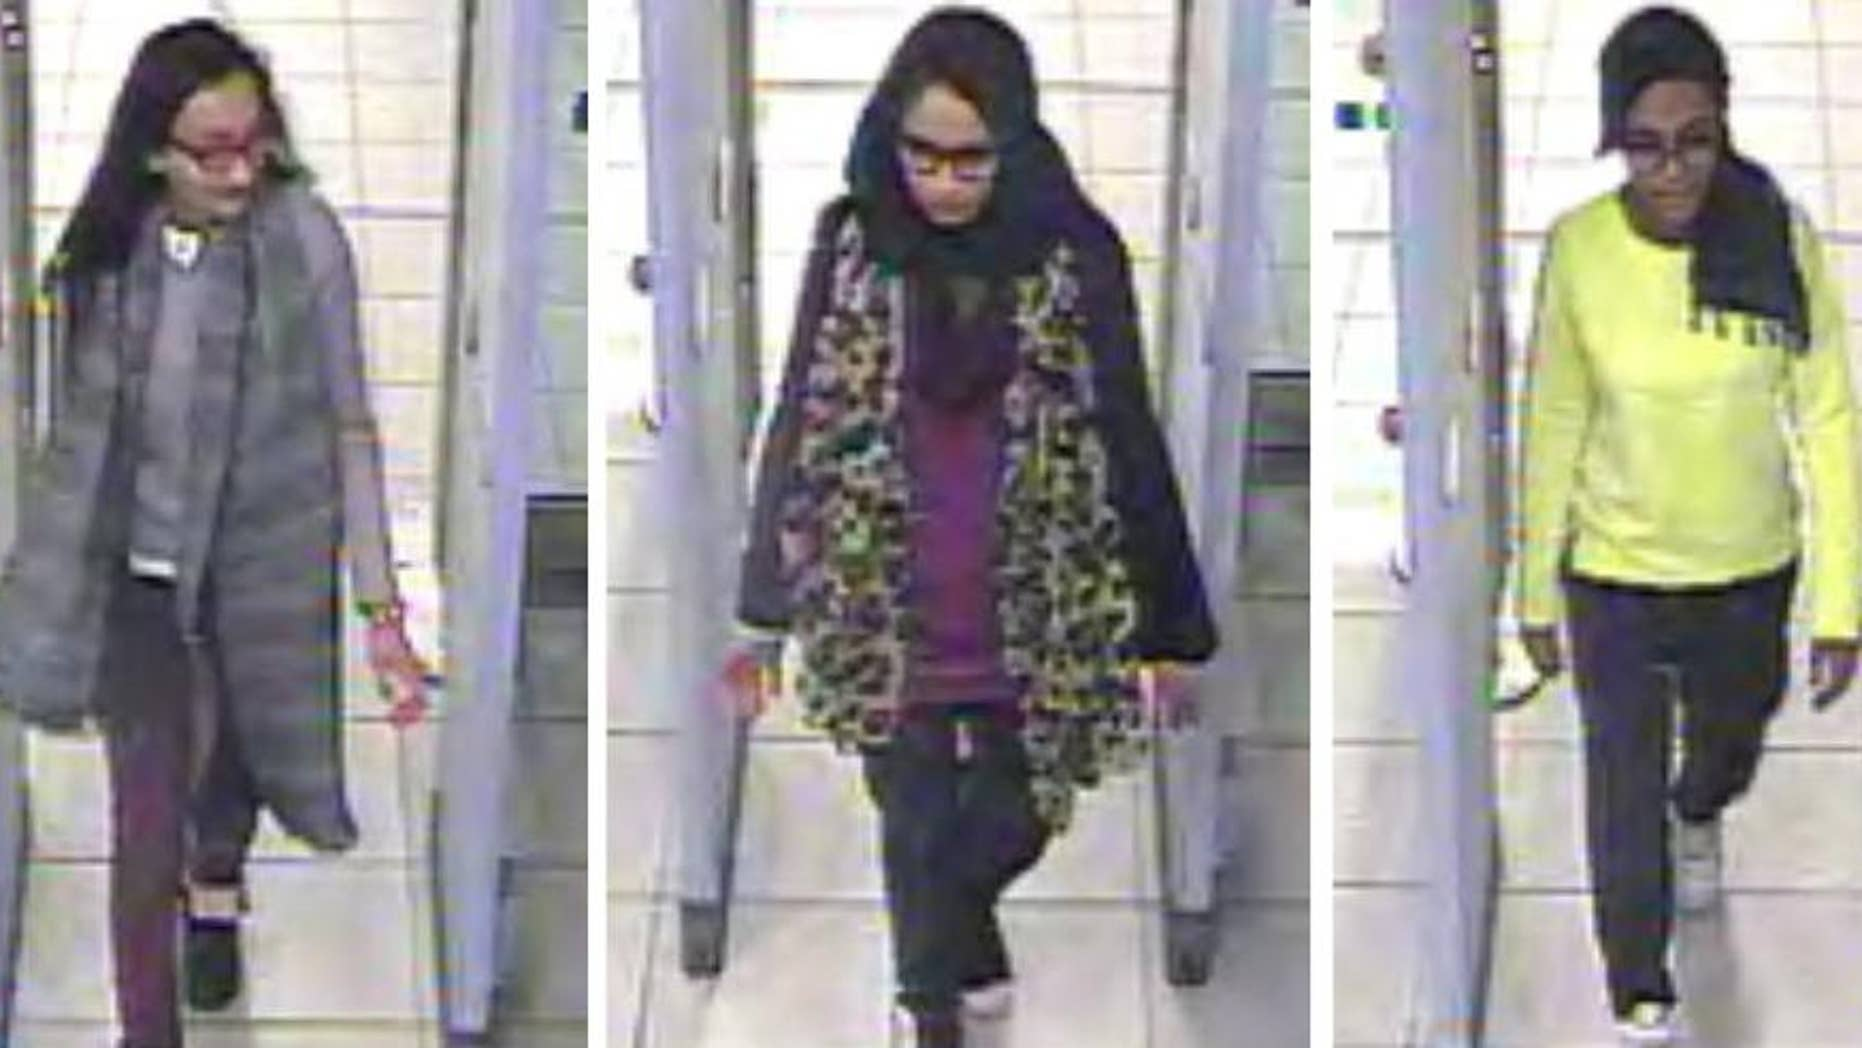 """FILE - This is a Monday Feb. 23, 2015 file handout image  of a three image combo of stills taken from CCTV issued by the Metropolitan Police  Kadiza Sultana,  left, Shamima Begum, centre and and  Amira Abase going through security at Gatwick airport, before they caught their flight to Turkey. A lawyer said one of three London schoolgirls who traveled to Islamic State-controlled area of Syria to become """"jihadi brides"""" is believed to have been killed in an air strike. Tasnime Akunjee told the BBC Friday Aug. 12, 2016 that Kadiza Sultana's family had been told that she died in the IS stronghold of Raqqa several weeks ago. (Metropolitan Police via AP)"""